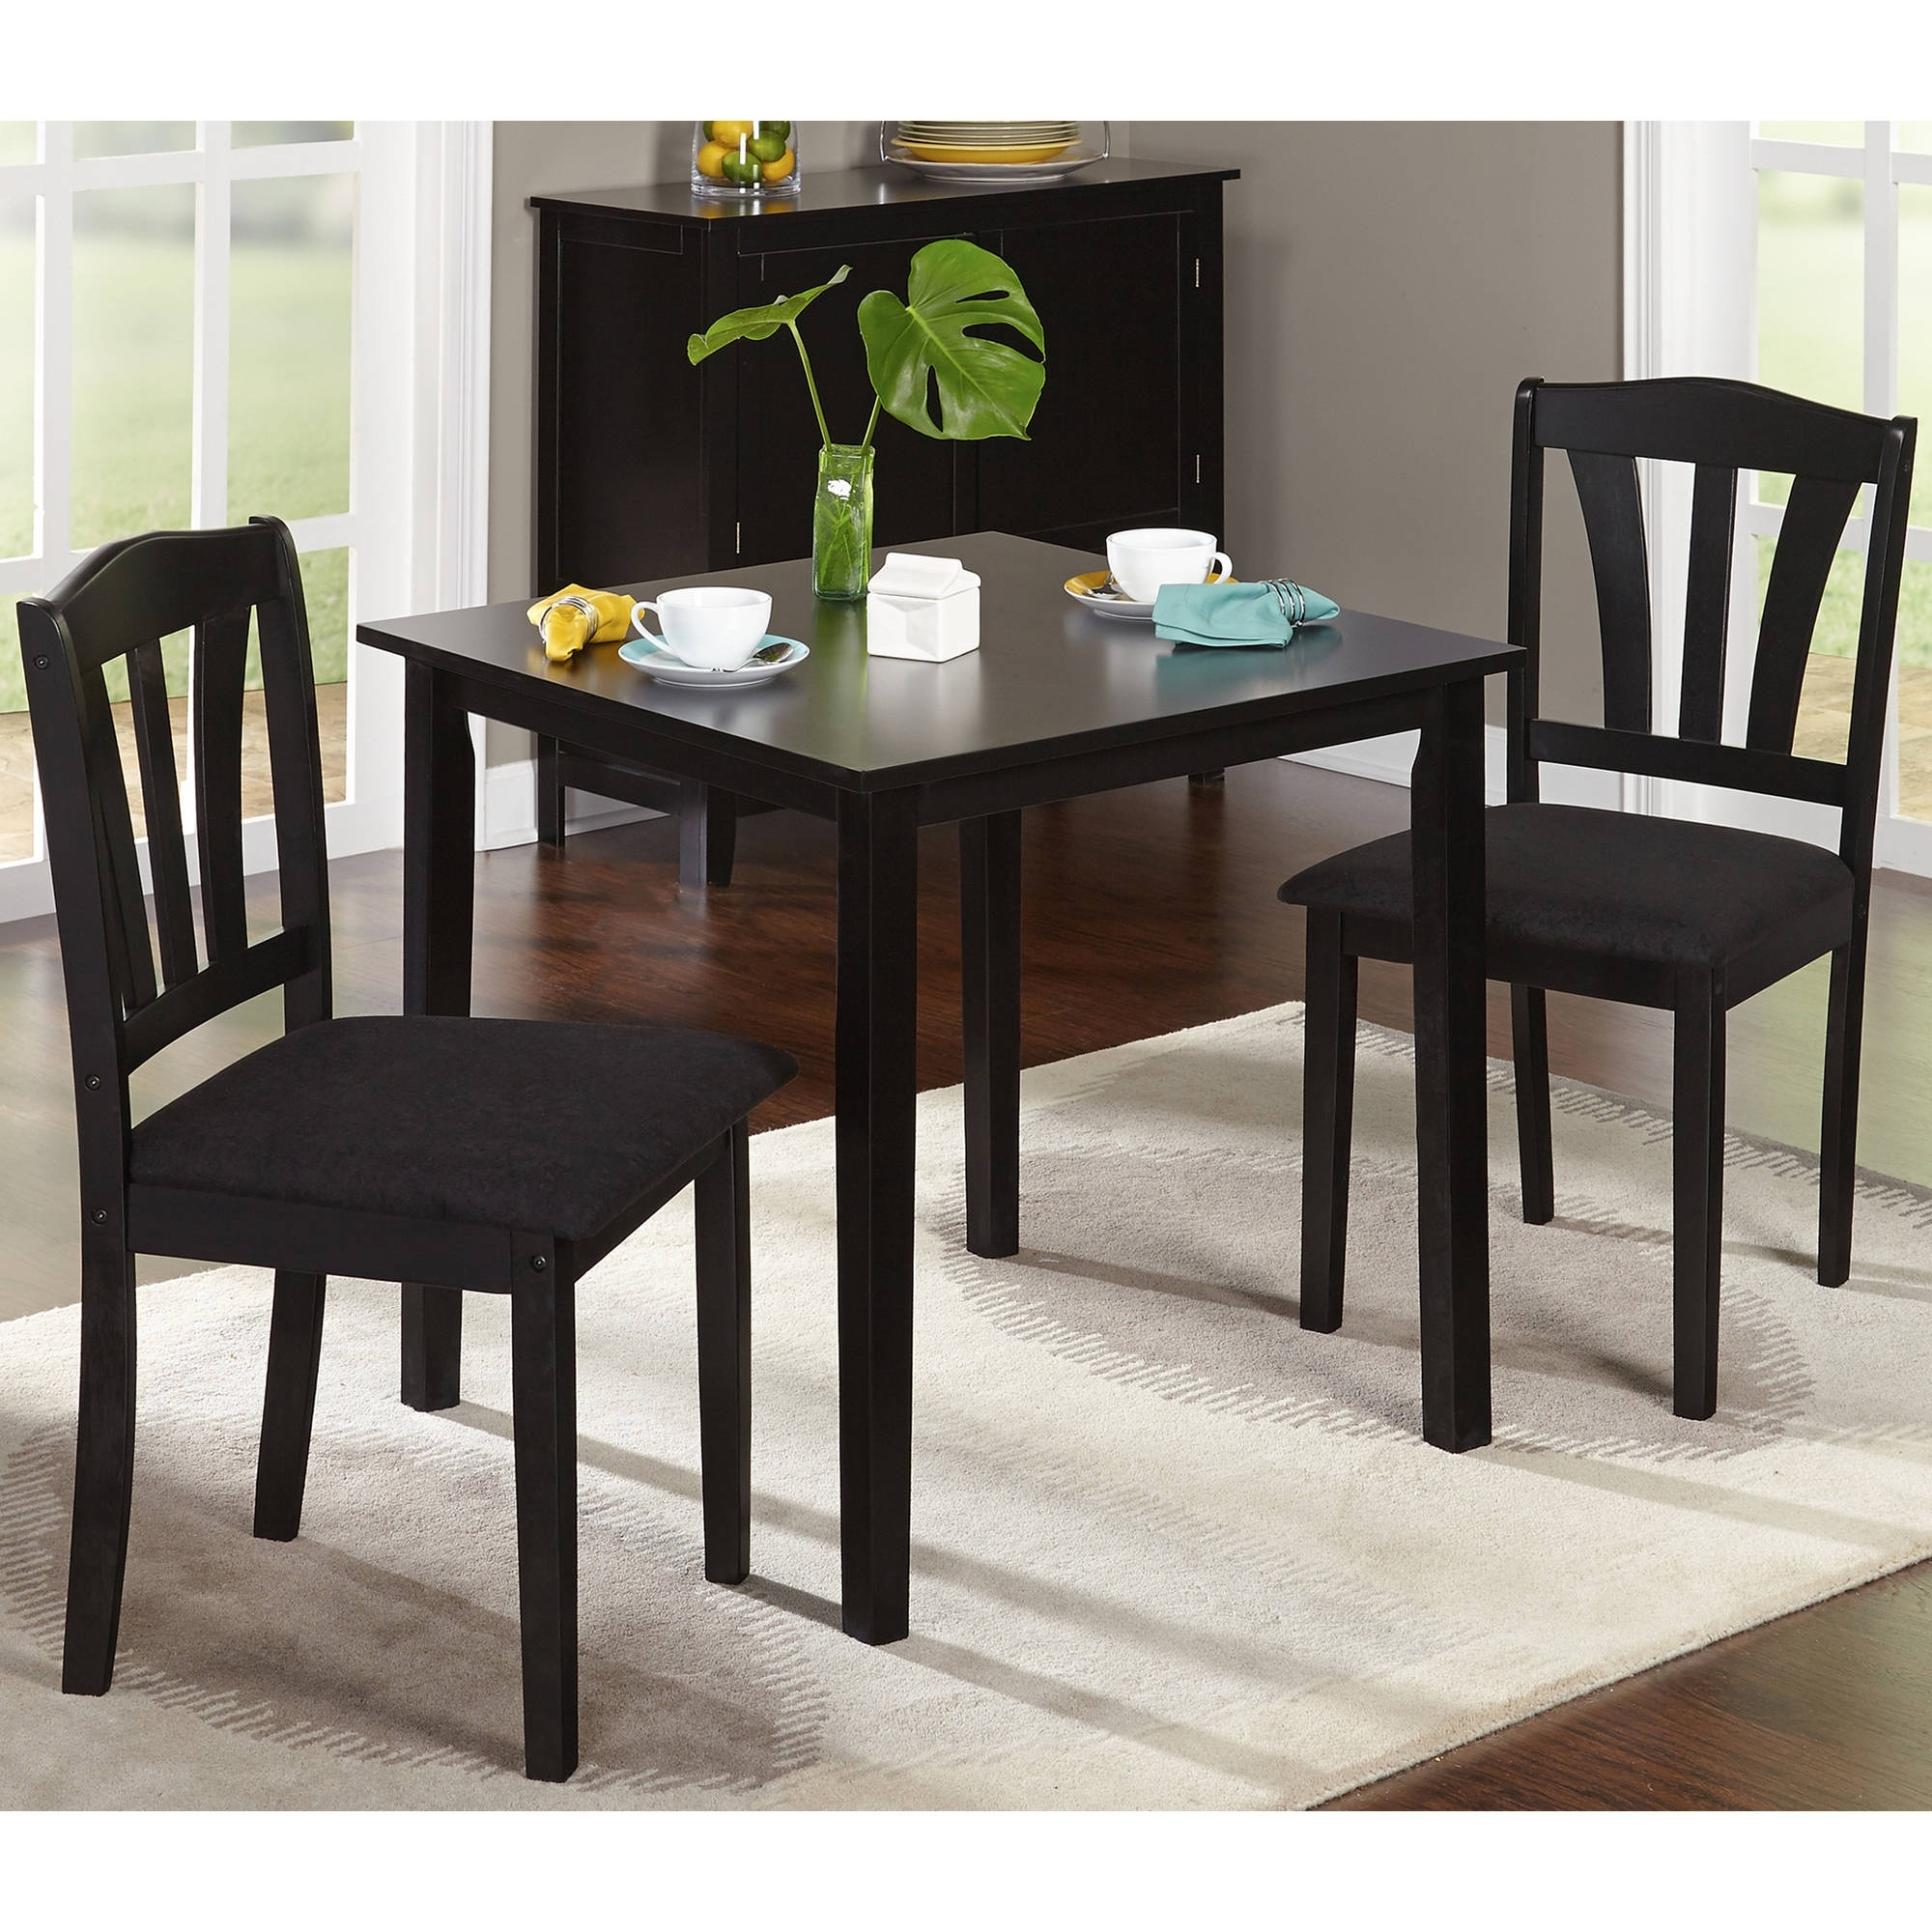 Famous Metropolitan 3 Piece Dining Set, Multiple Finishes – Walmart Pertaining To Dining Table Sets For  (View 4 of 25)